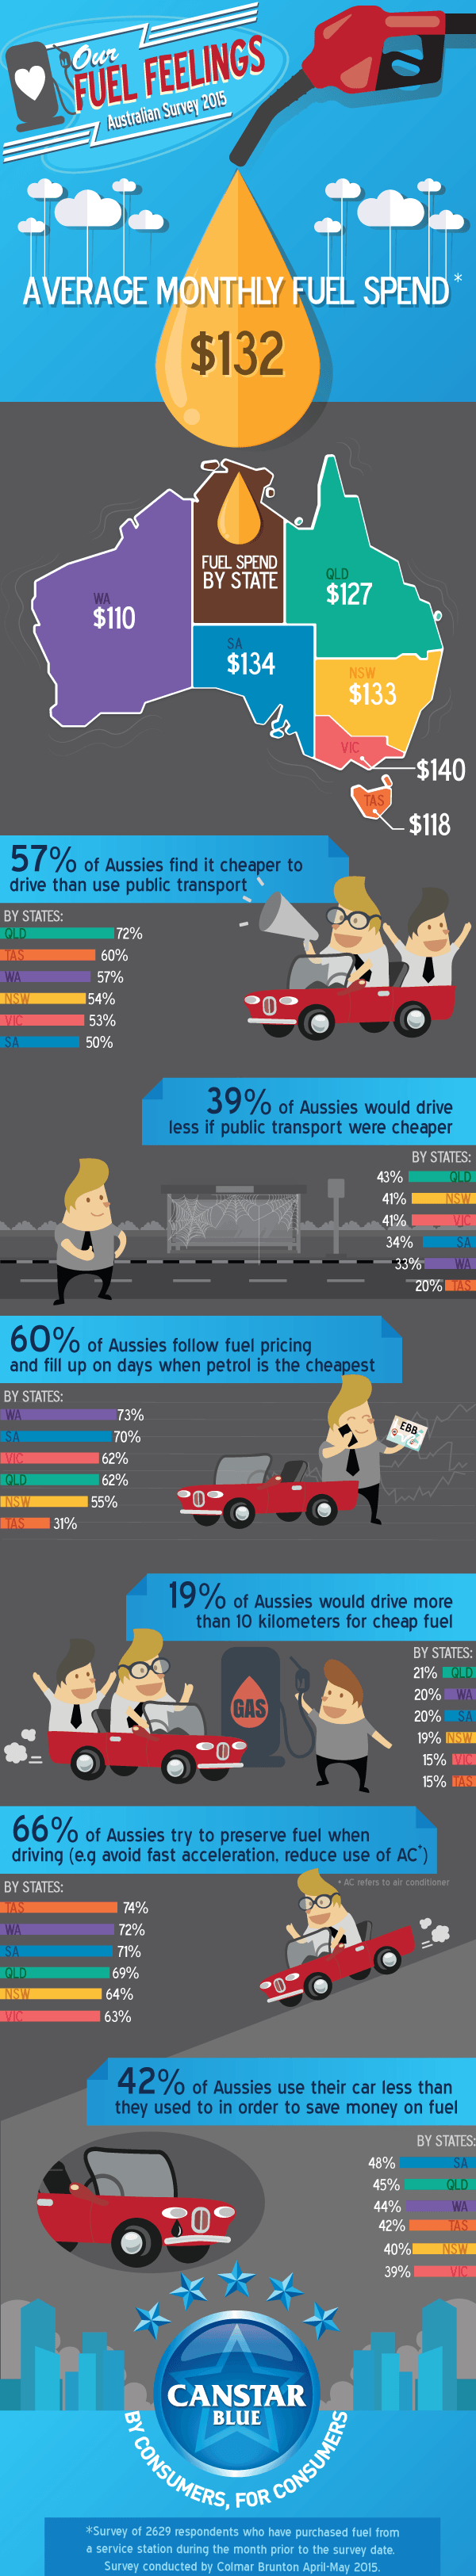 Cost of fuel - Our infographic for Fuel Feelings 2015